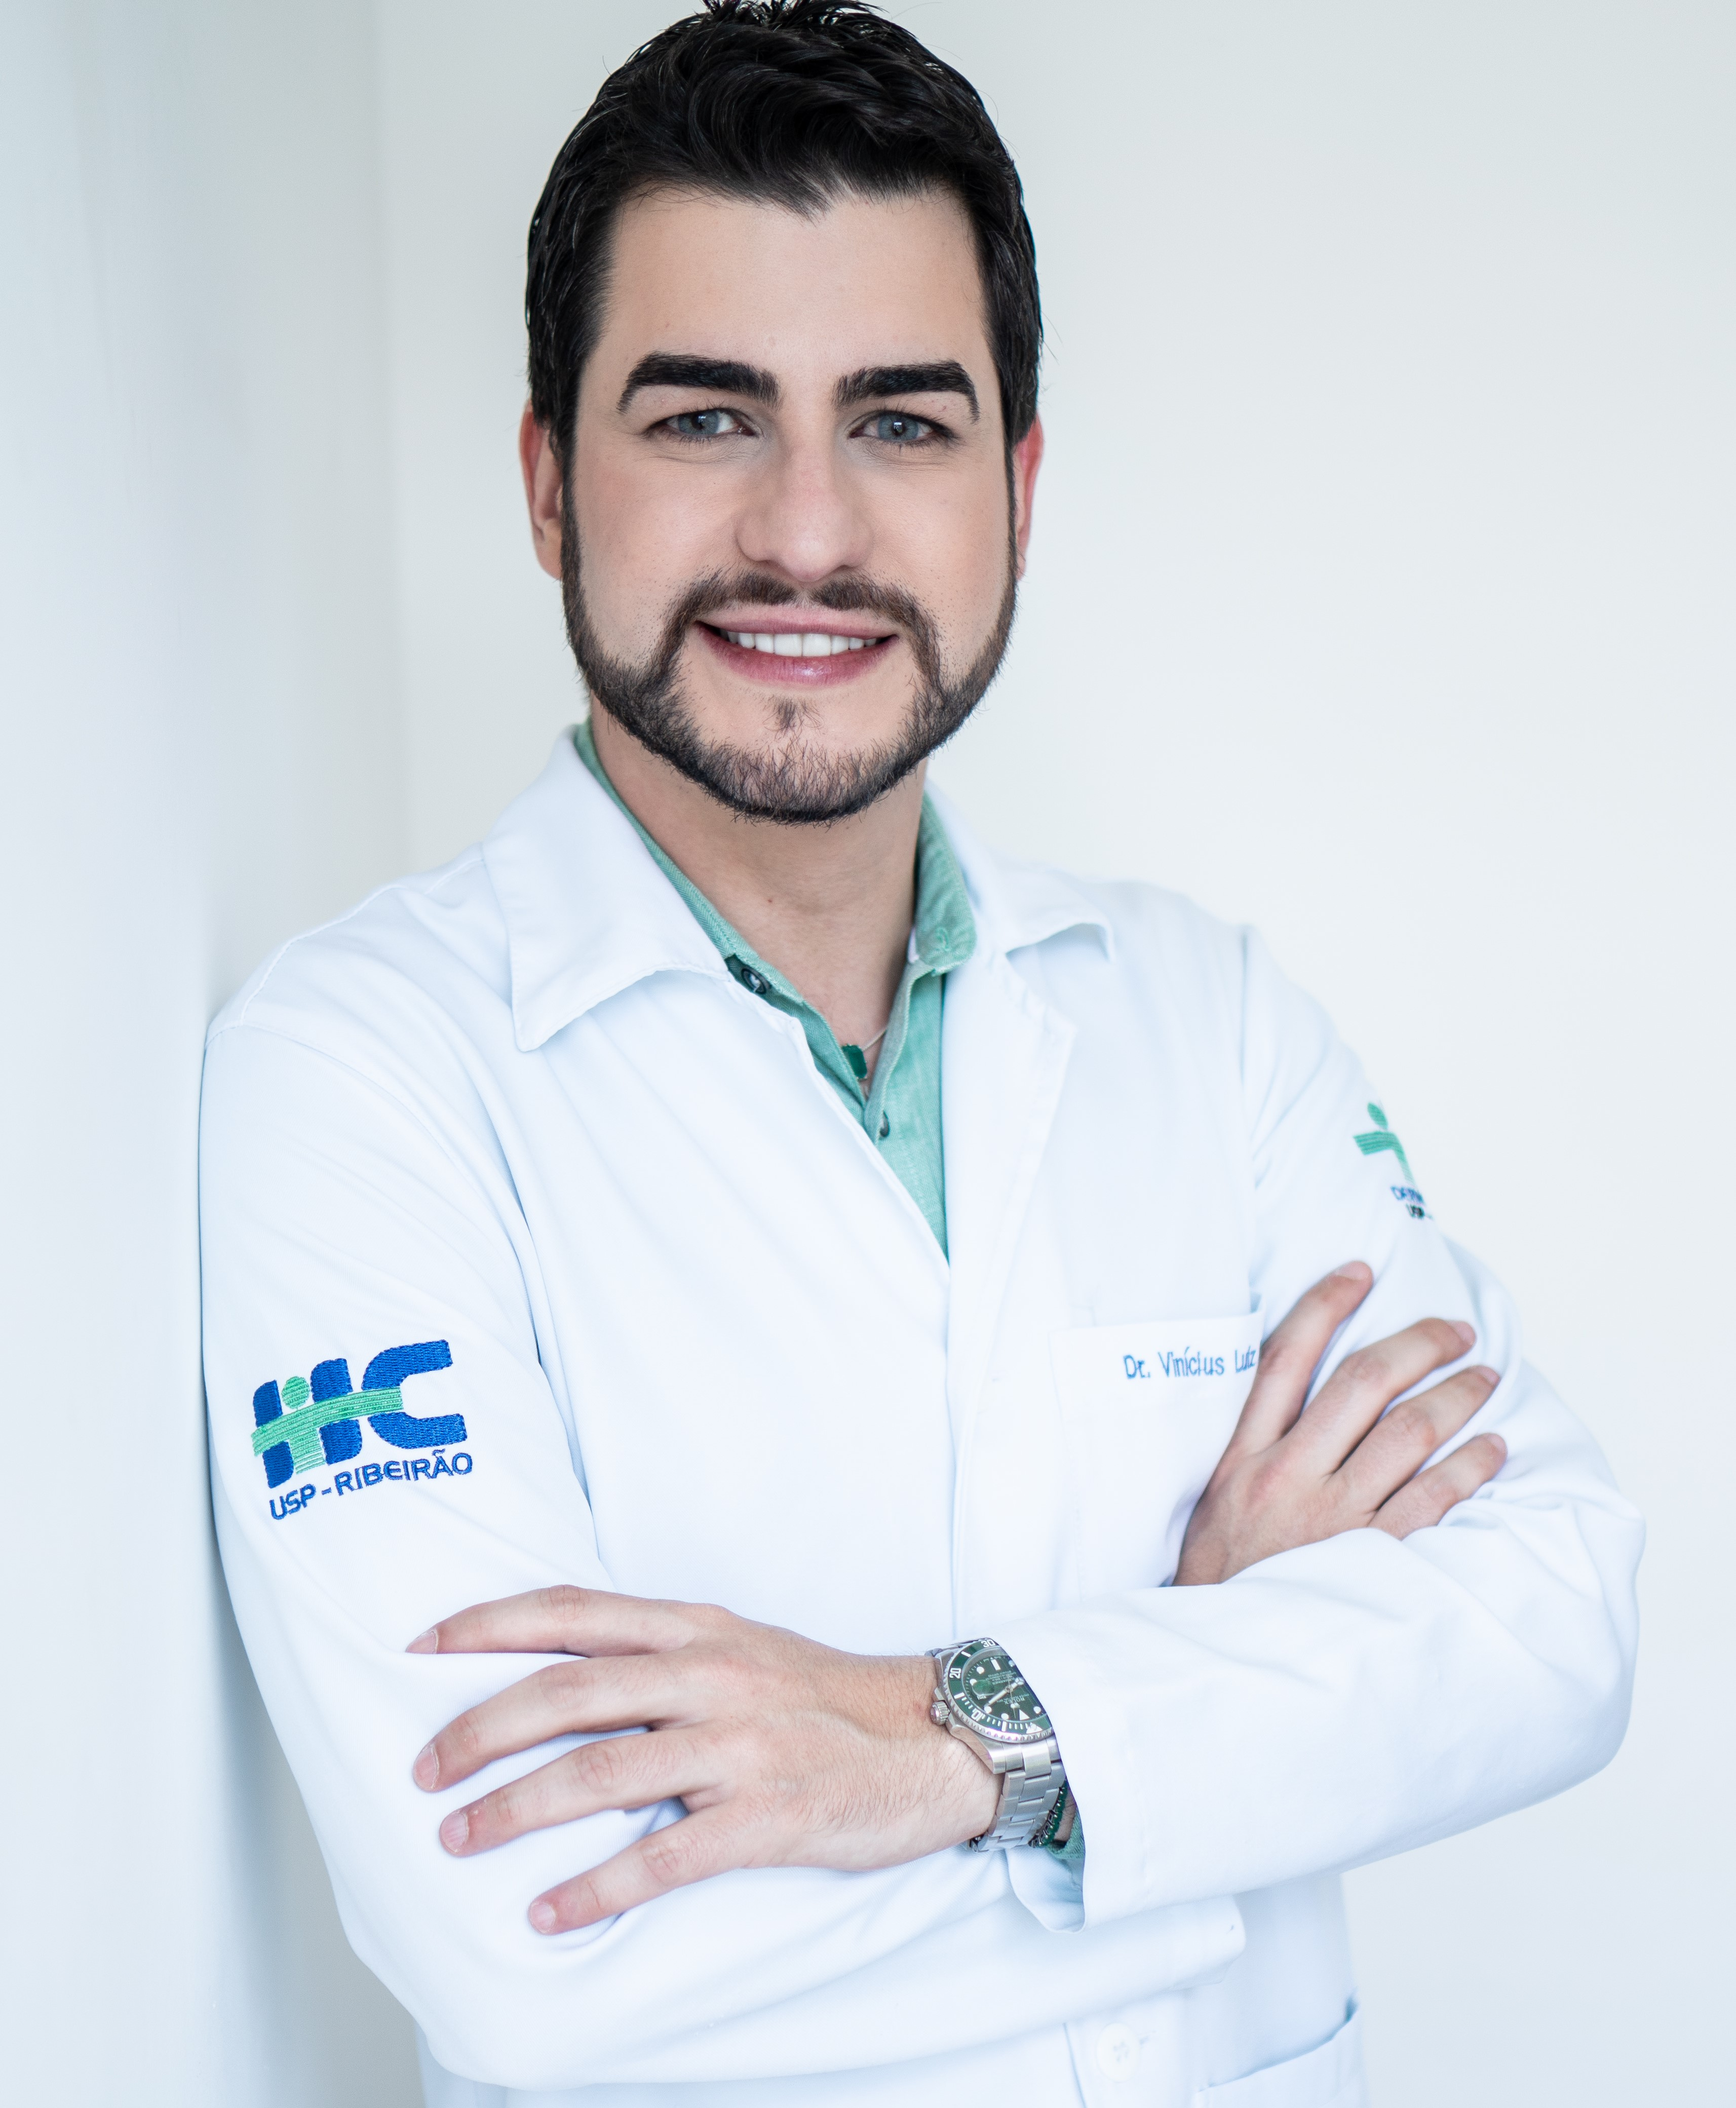 Dr. Vinicius Machion